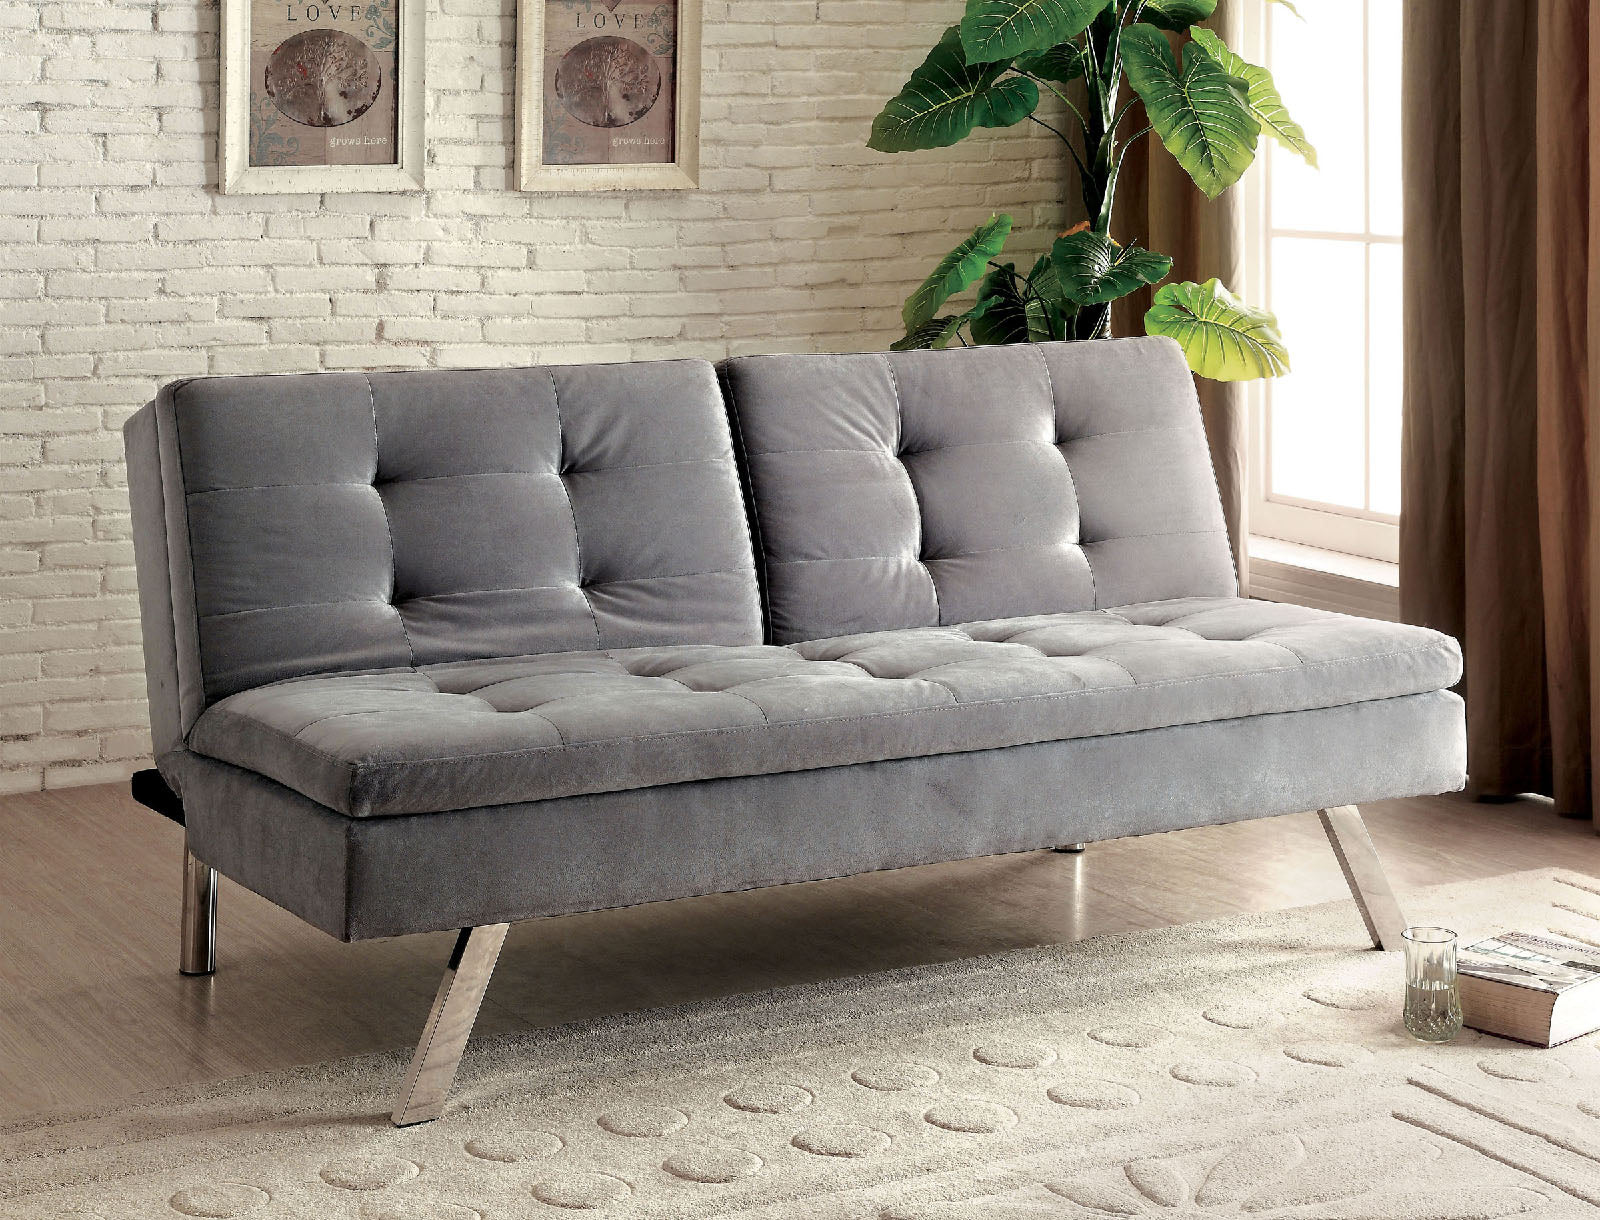 VALIER / FUTON SOFA BED